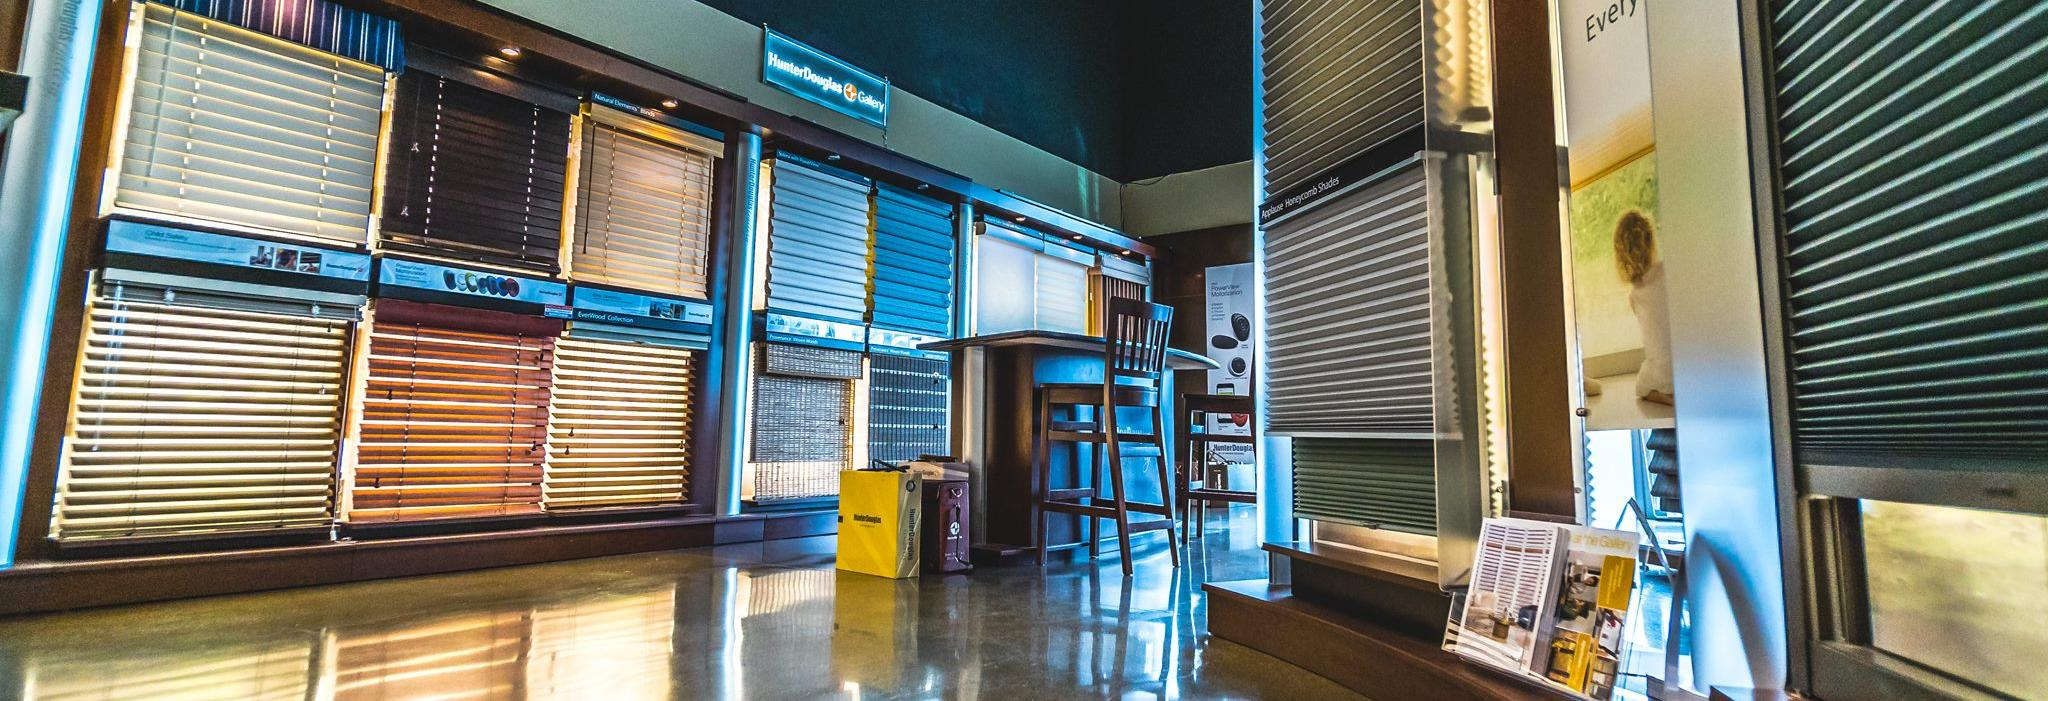 window dressing showroom, hunter douglas, blinds, shades, window treatments